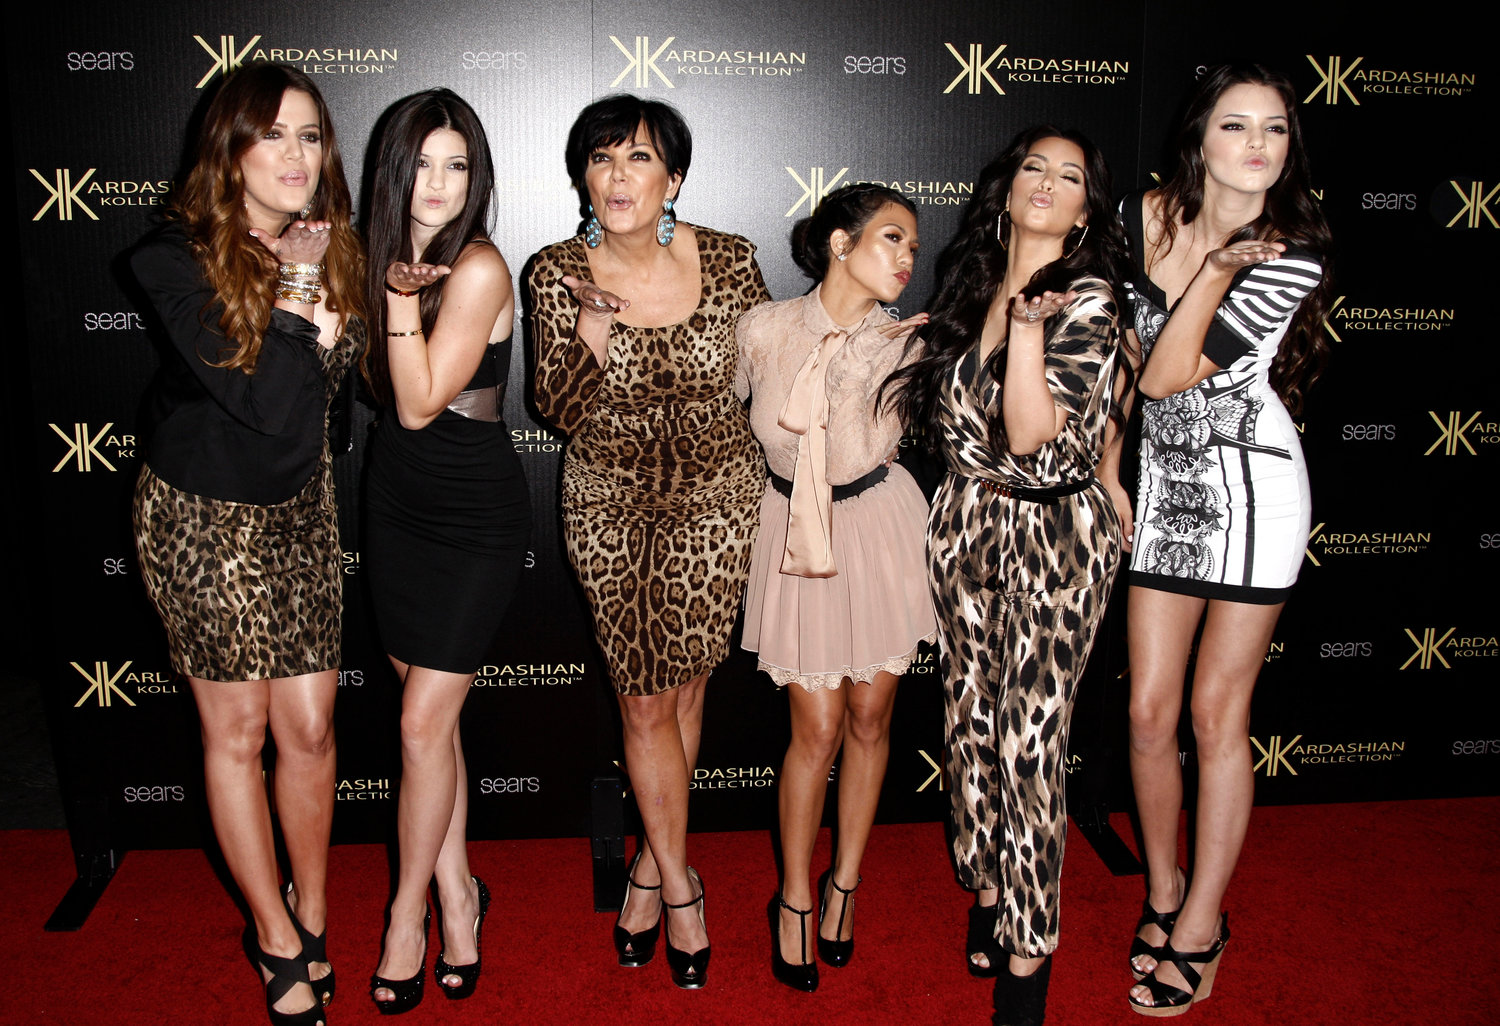 FILE - In this Aug. 17, 2011 file photo, from left, Khloe Kardashian, Kylie Jenner, Kris Jenner, Kourtney Kardashian, Kim Kardashian, and Kendall Jenner arrive at the Kardashian Kollection launch party in Los Angeles.  (AP Photo/Matt Sayles, file)